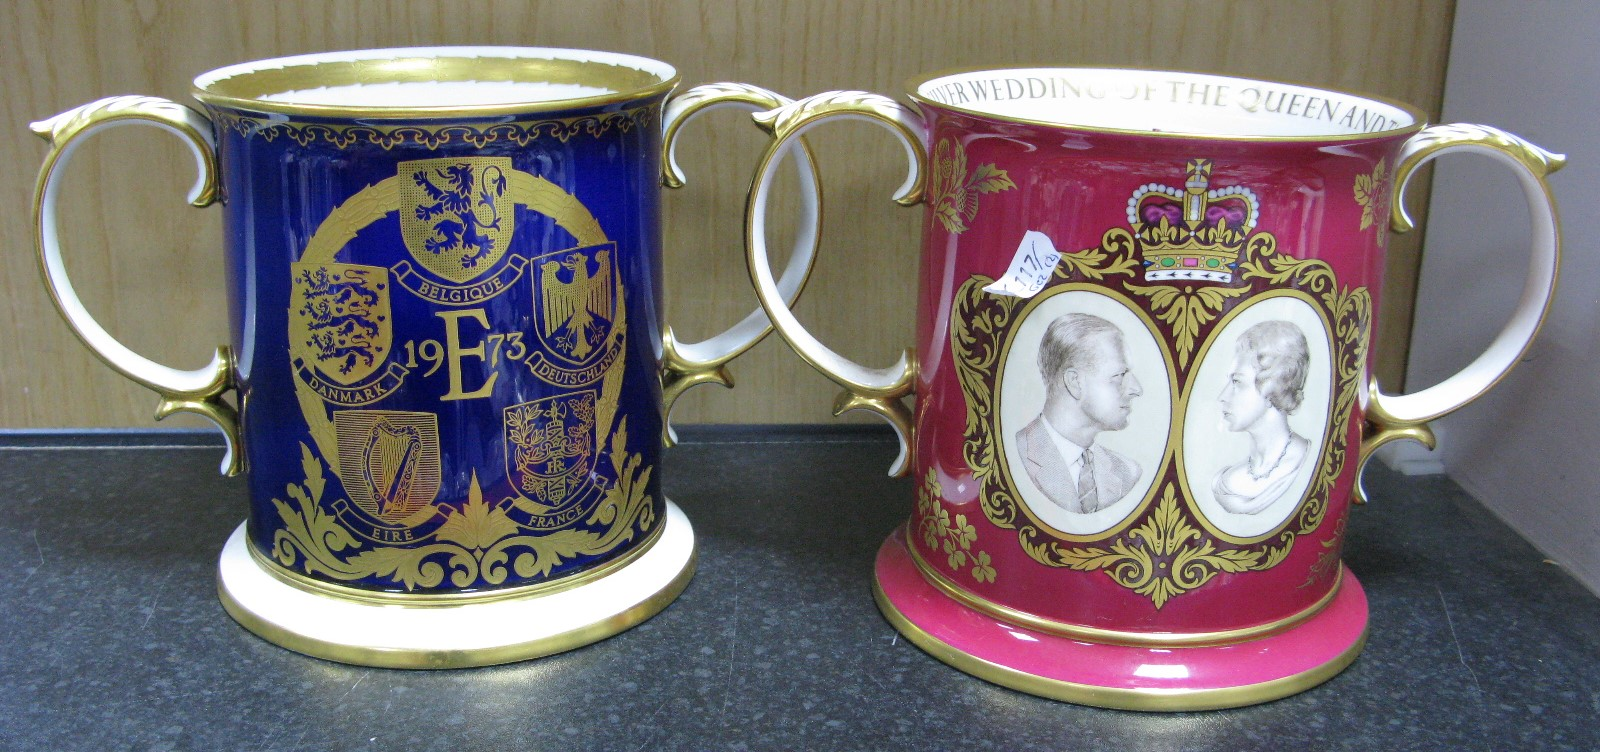 Lot 1051 - A Spode Porcelain Two Handled Loving Cup, to commemorate the Enlargement of the European Community